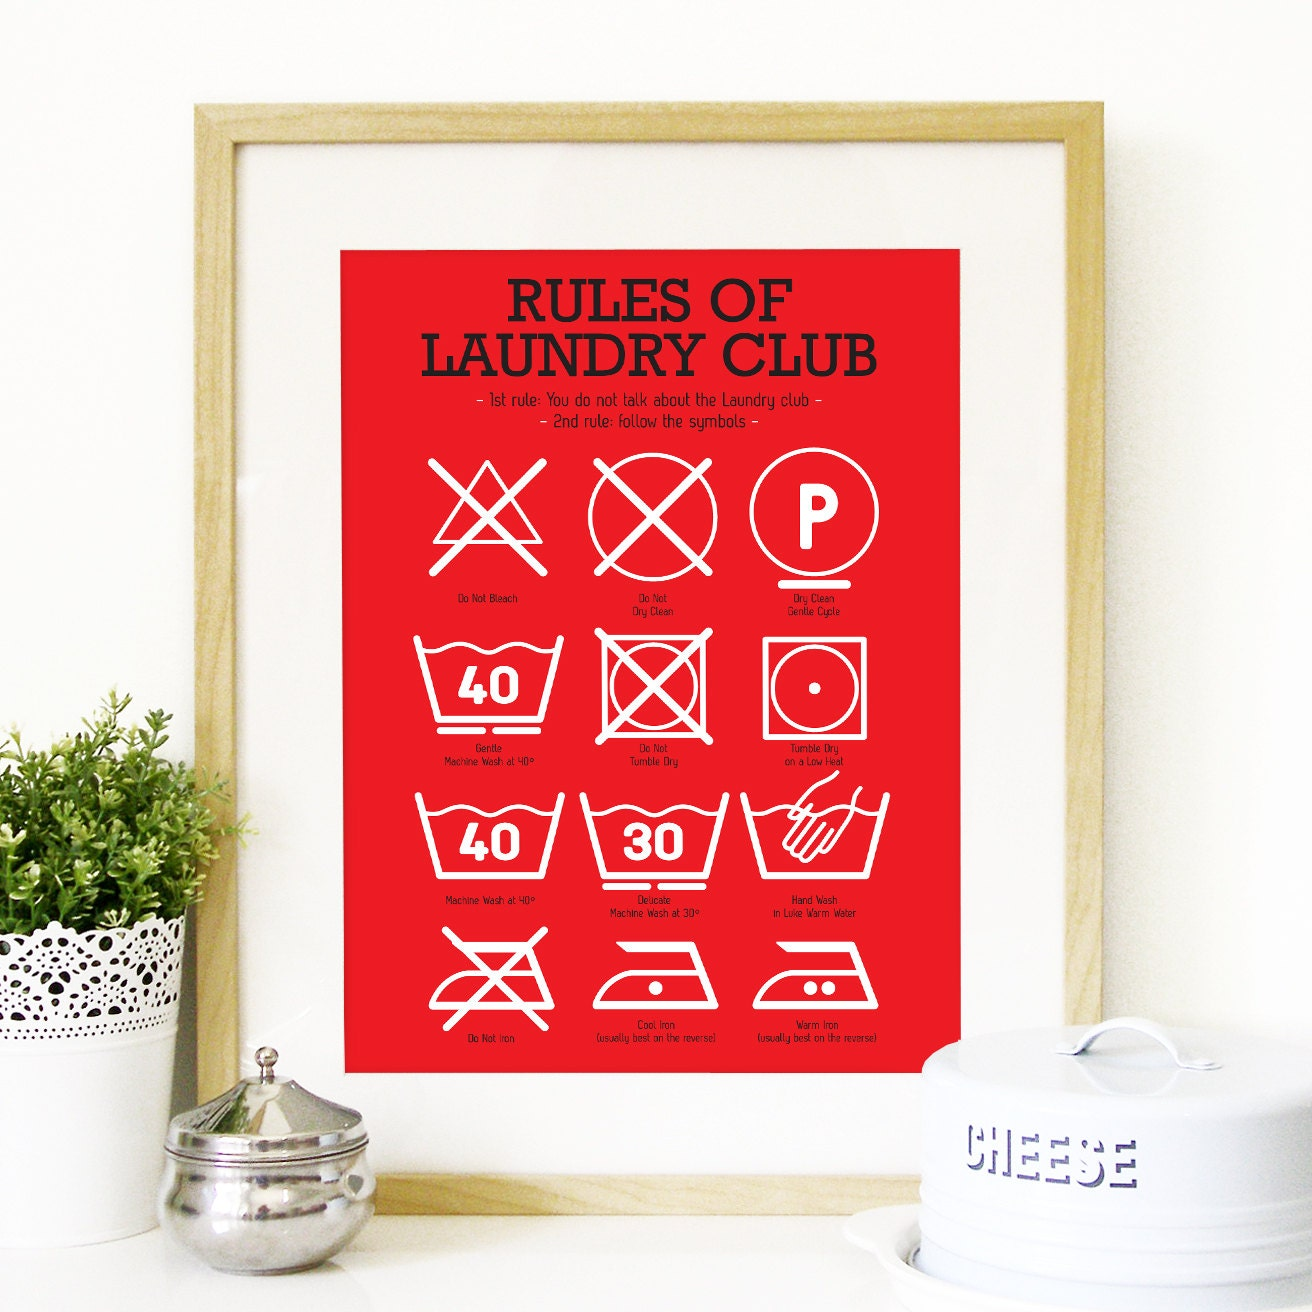 Laundry Symbols Wall Art Kitchen Art Laundry Club Poster Art With Laundry Symbols Mid